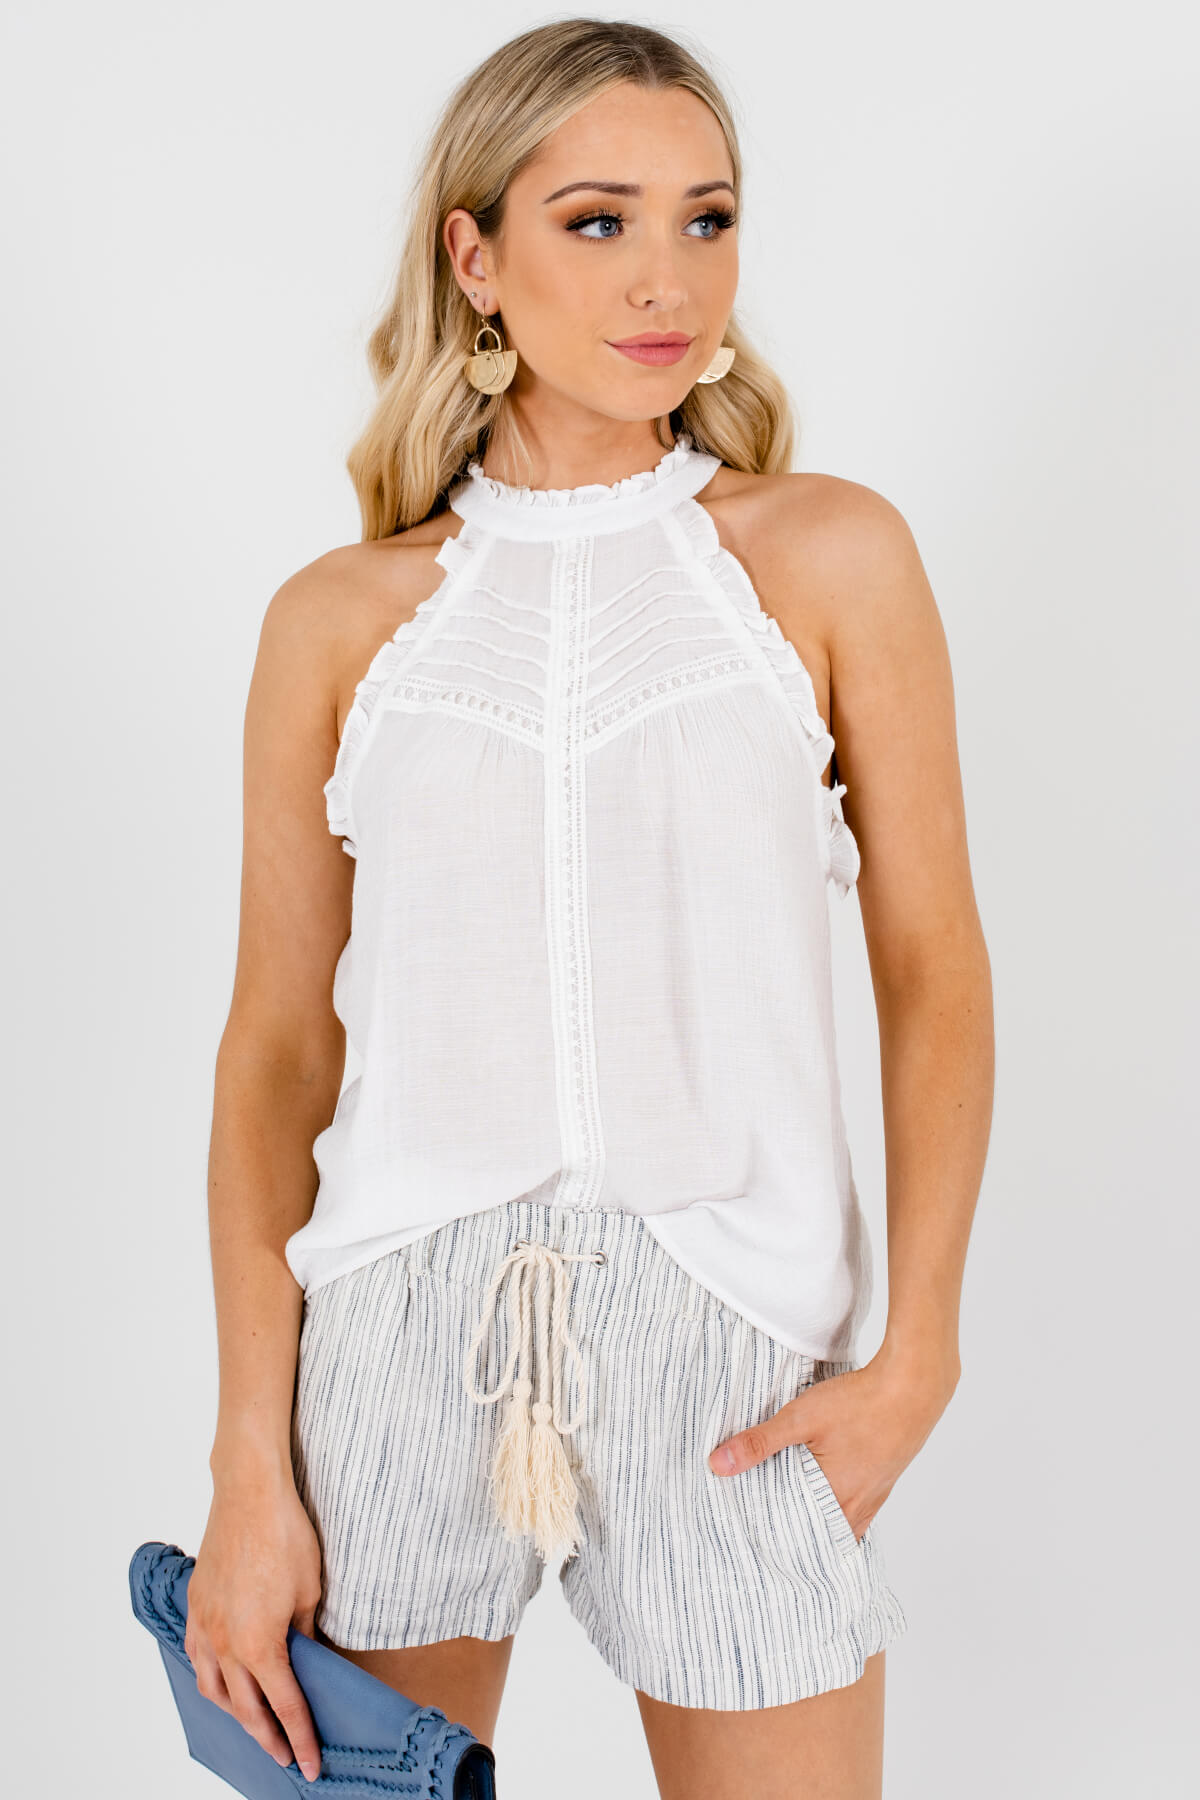 White Ruffle Pleated Crochet Tank Tops Affordable Online Boutique